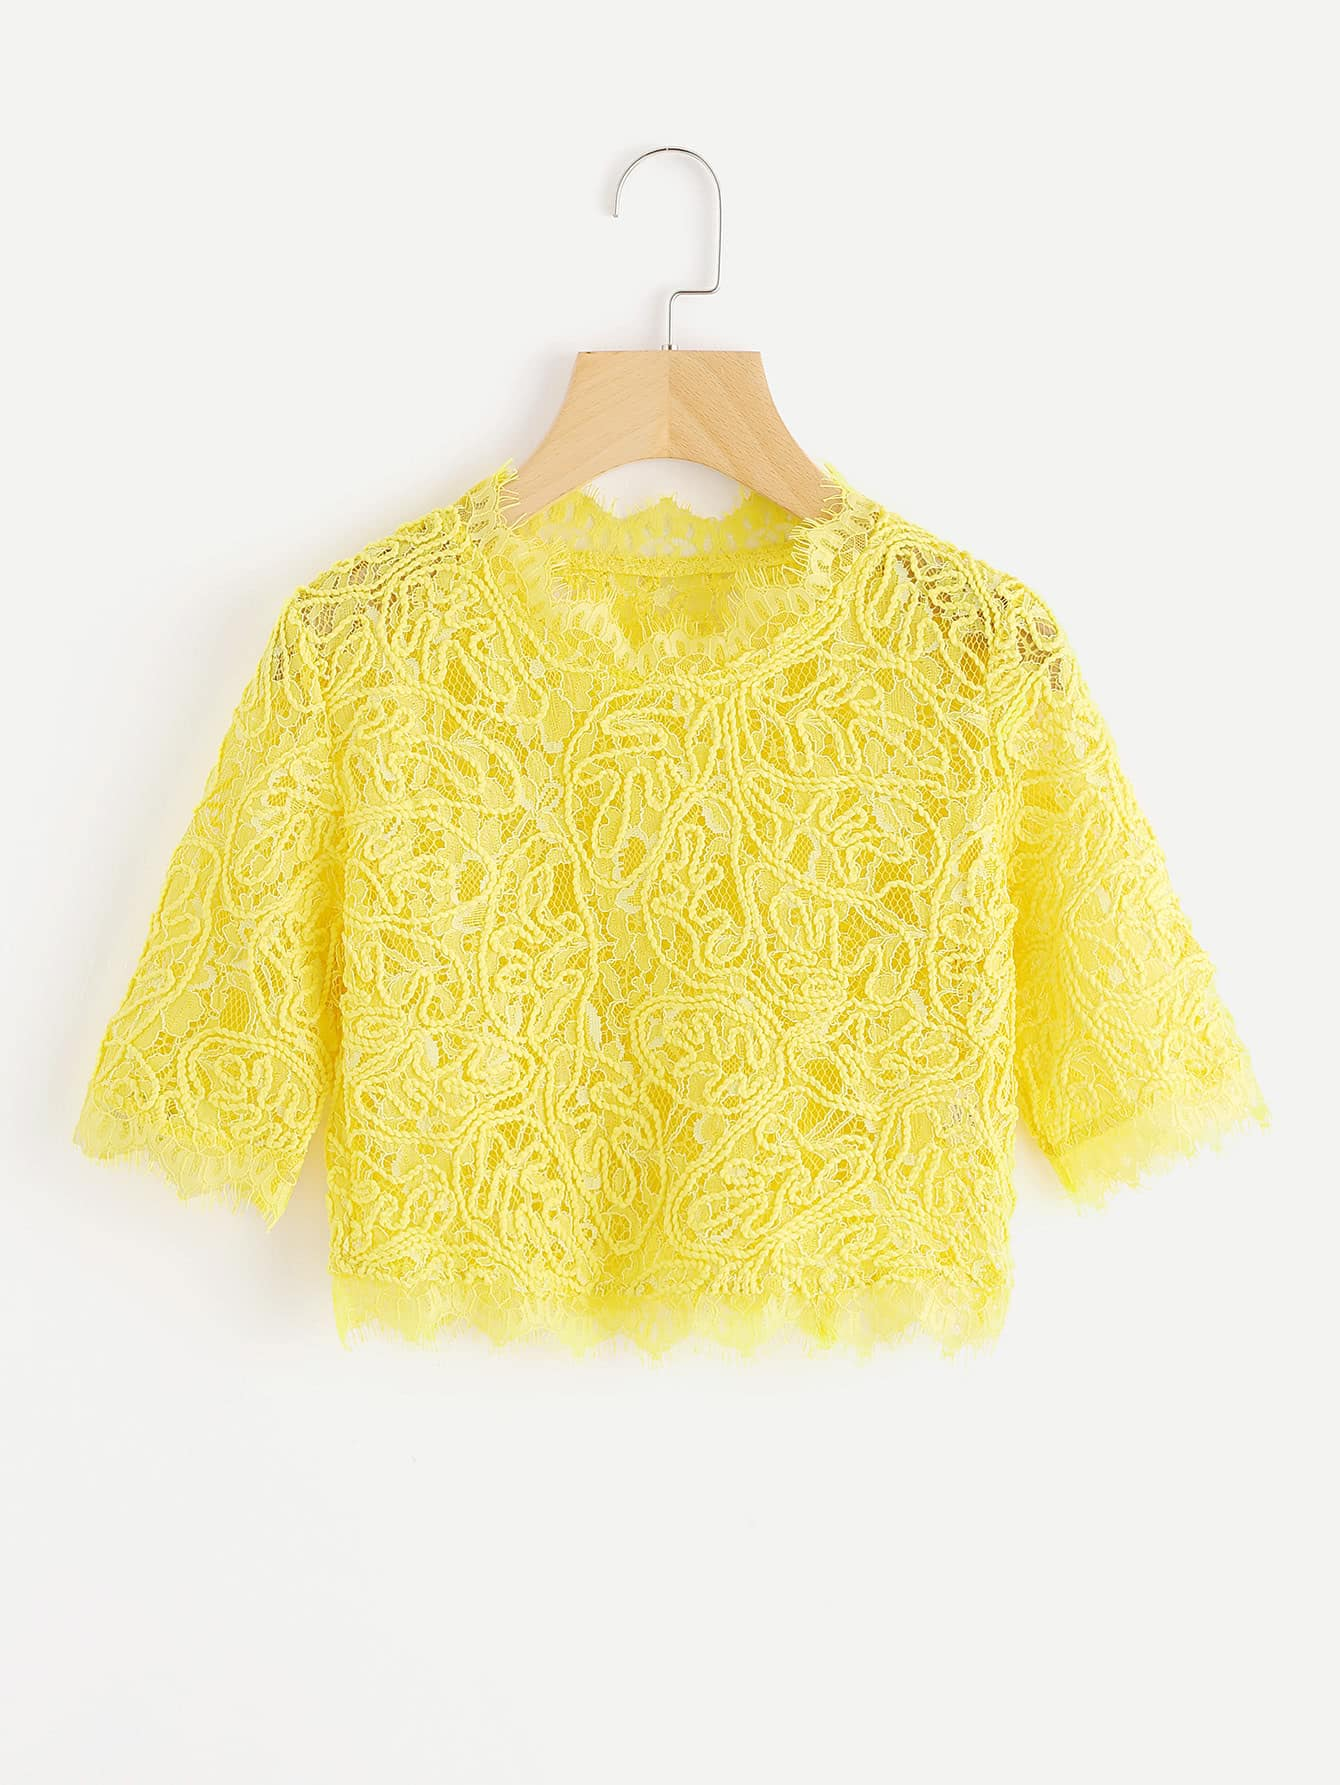 Hollow Out Eyelash Lace Crop Top gold sexy gold thread embroidery hollow out lace crop top